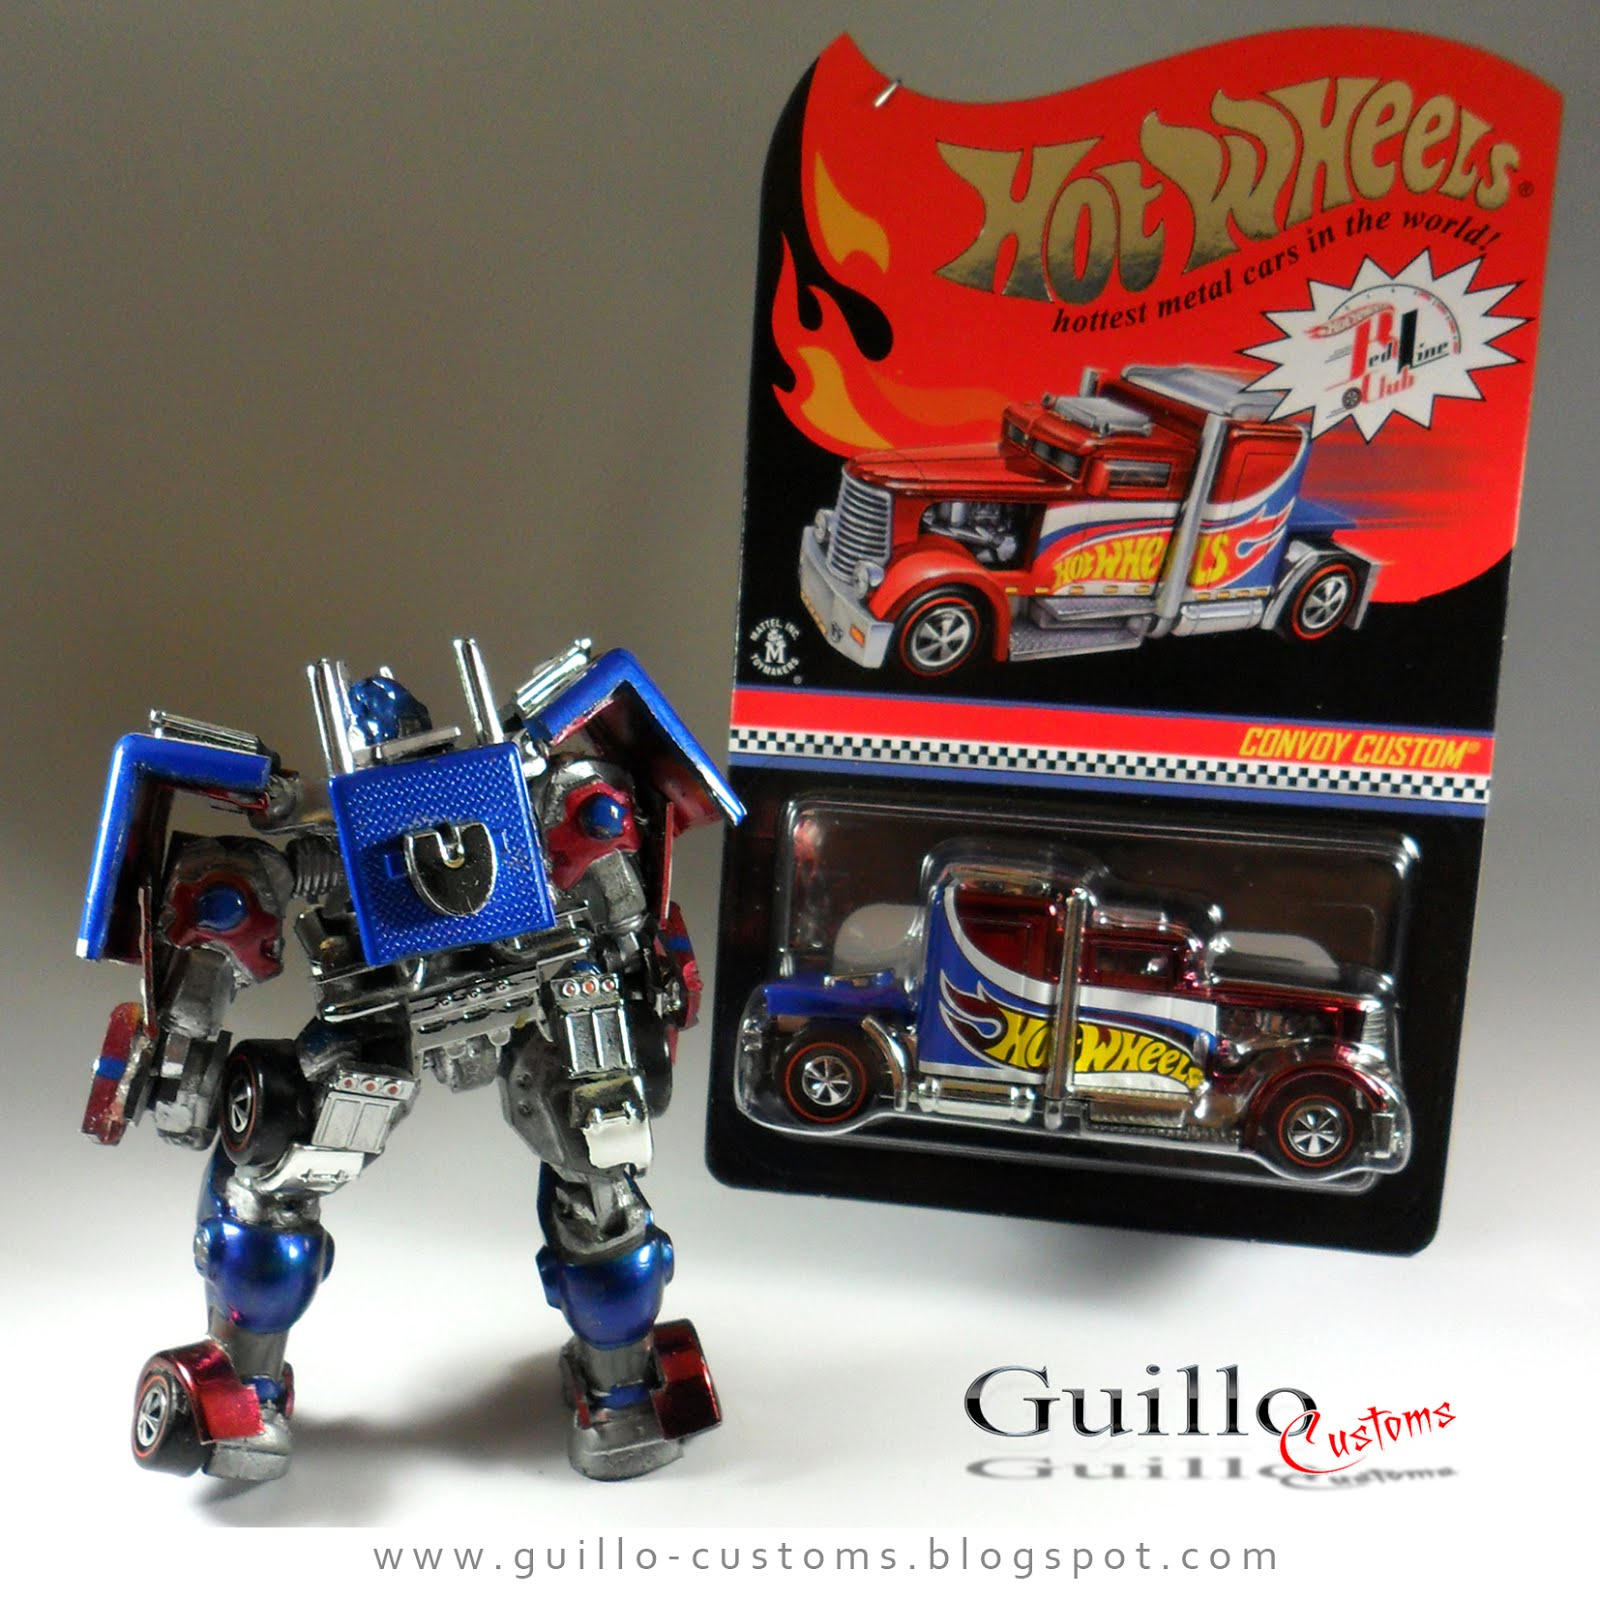 Guillo 39 s customs hot wheels custom transformer style rlc for 9 salon hot wheels 2016